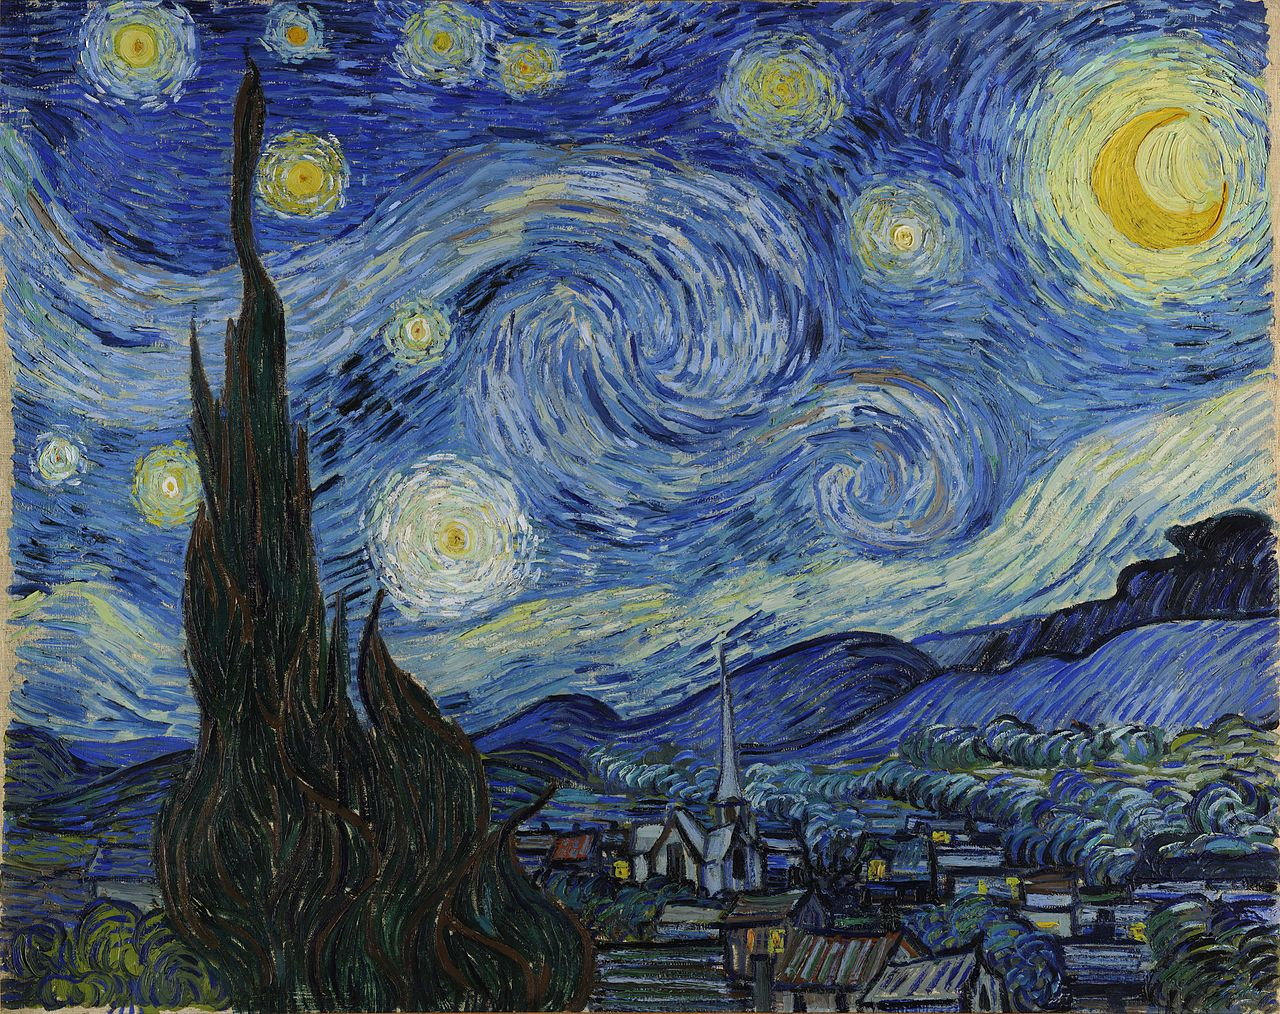 1000-piece Vincent Van Gogh Starry Night Jigsaw Puzzle - Rest In Pieces